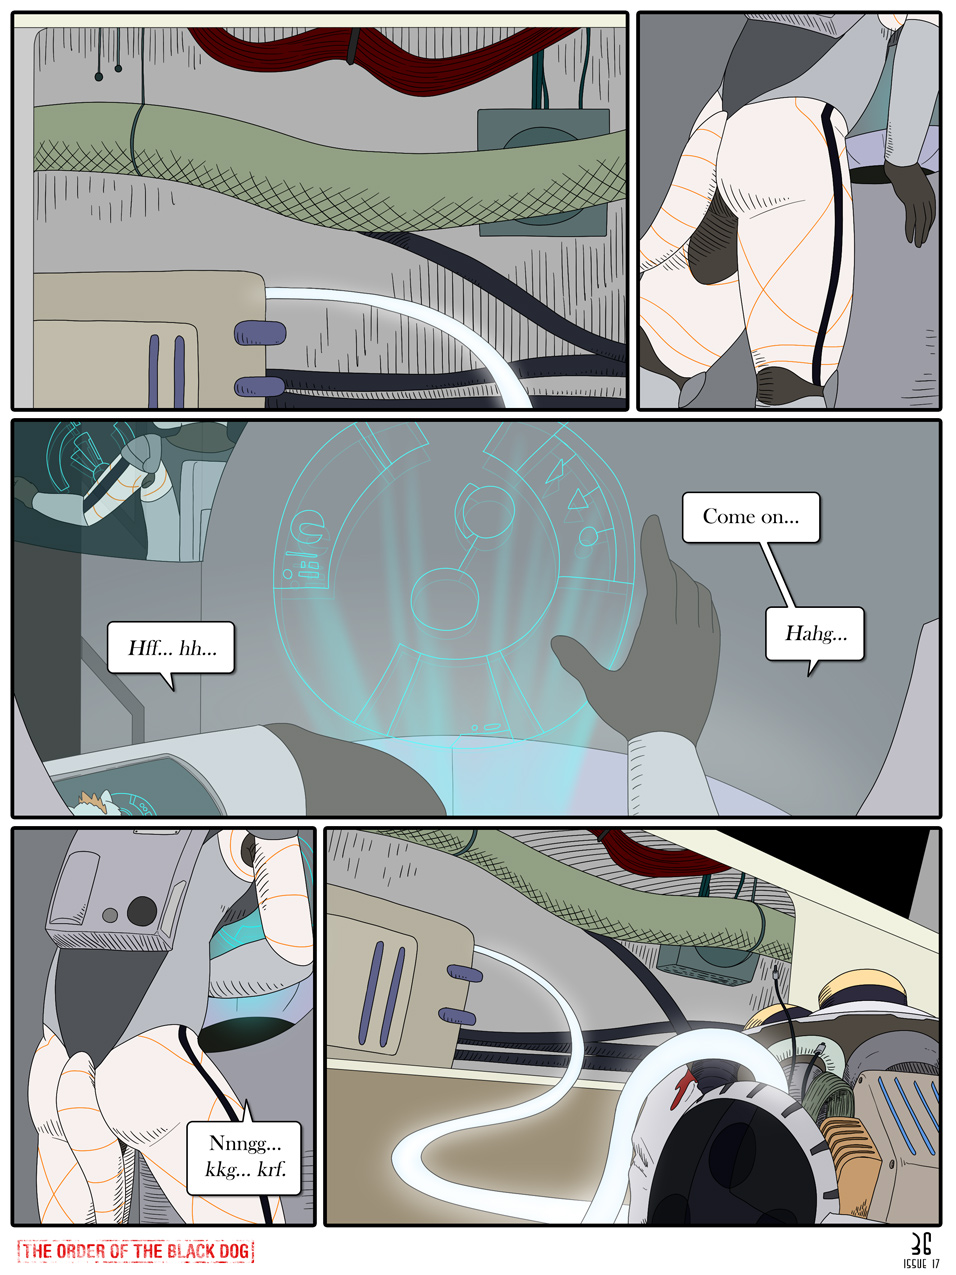 Issue 17, Page 36